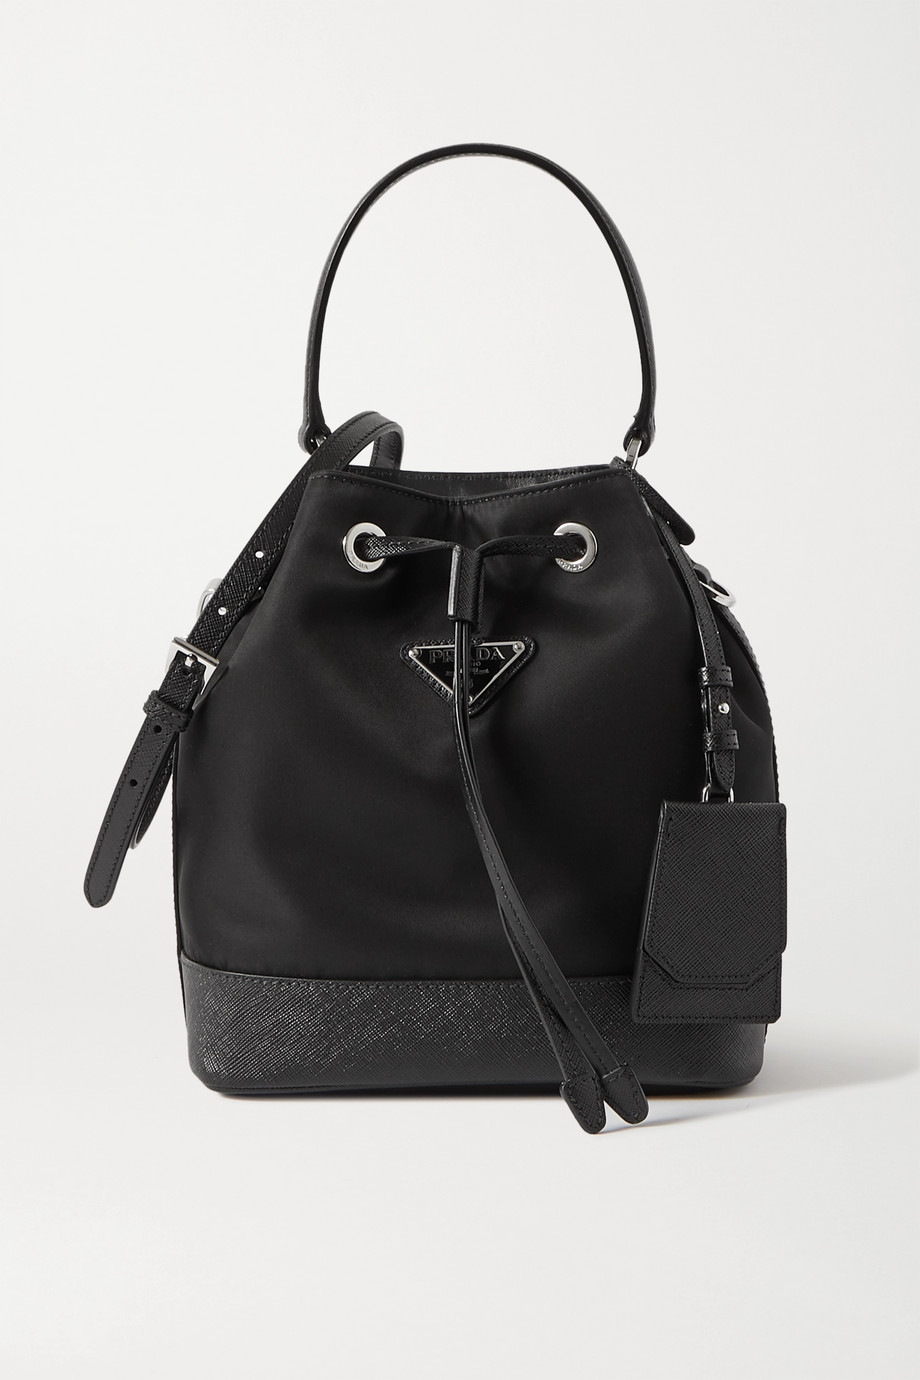 Prada Tessuto textured leather-trimmed nylon bucket bag